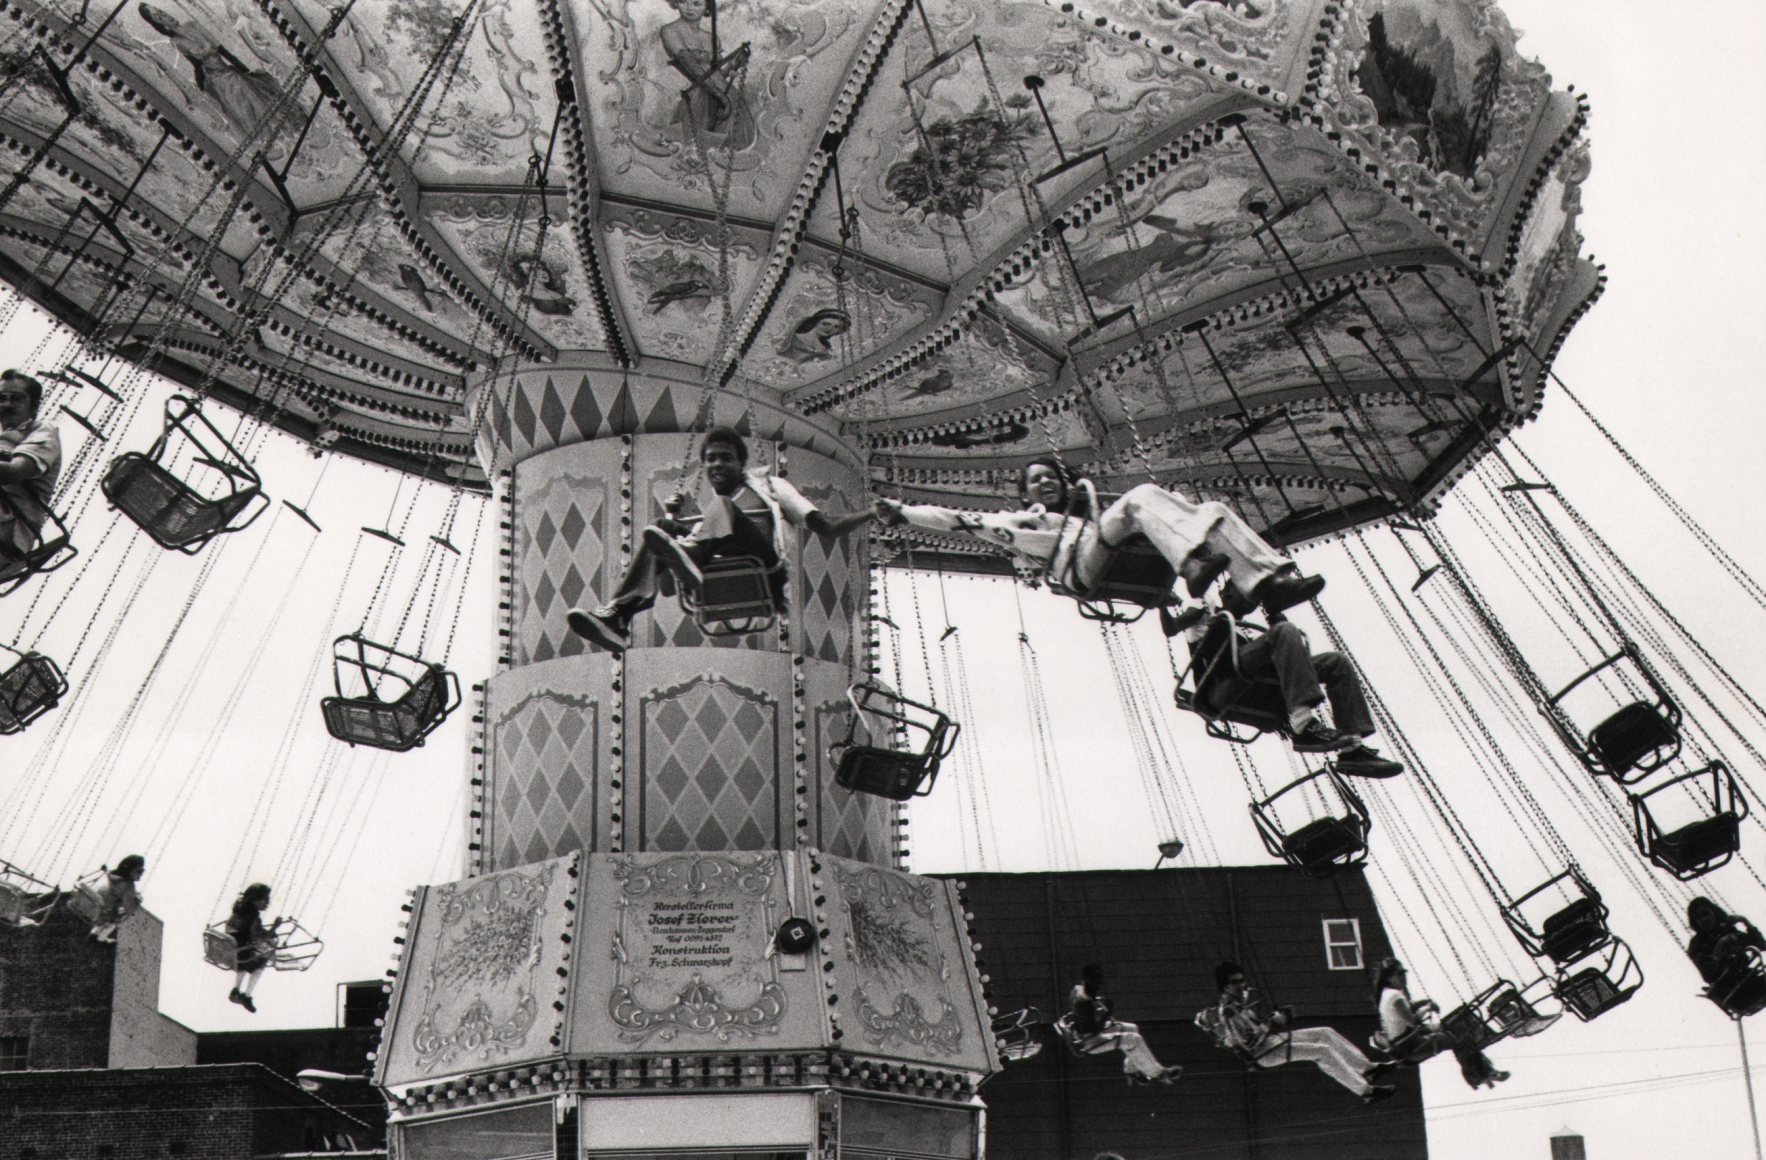 18. Anthony Barboza, Coney Island, 1970s. A carnival swing in motion, photographed from below. The two closest riders hold hands.